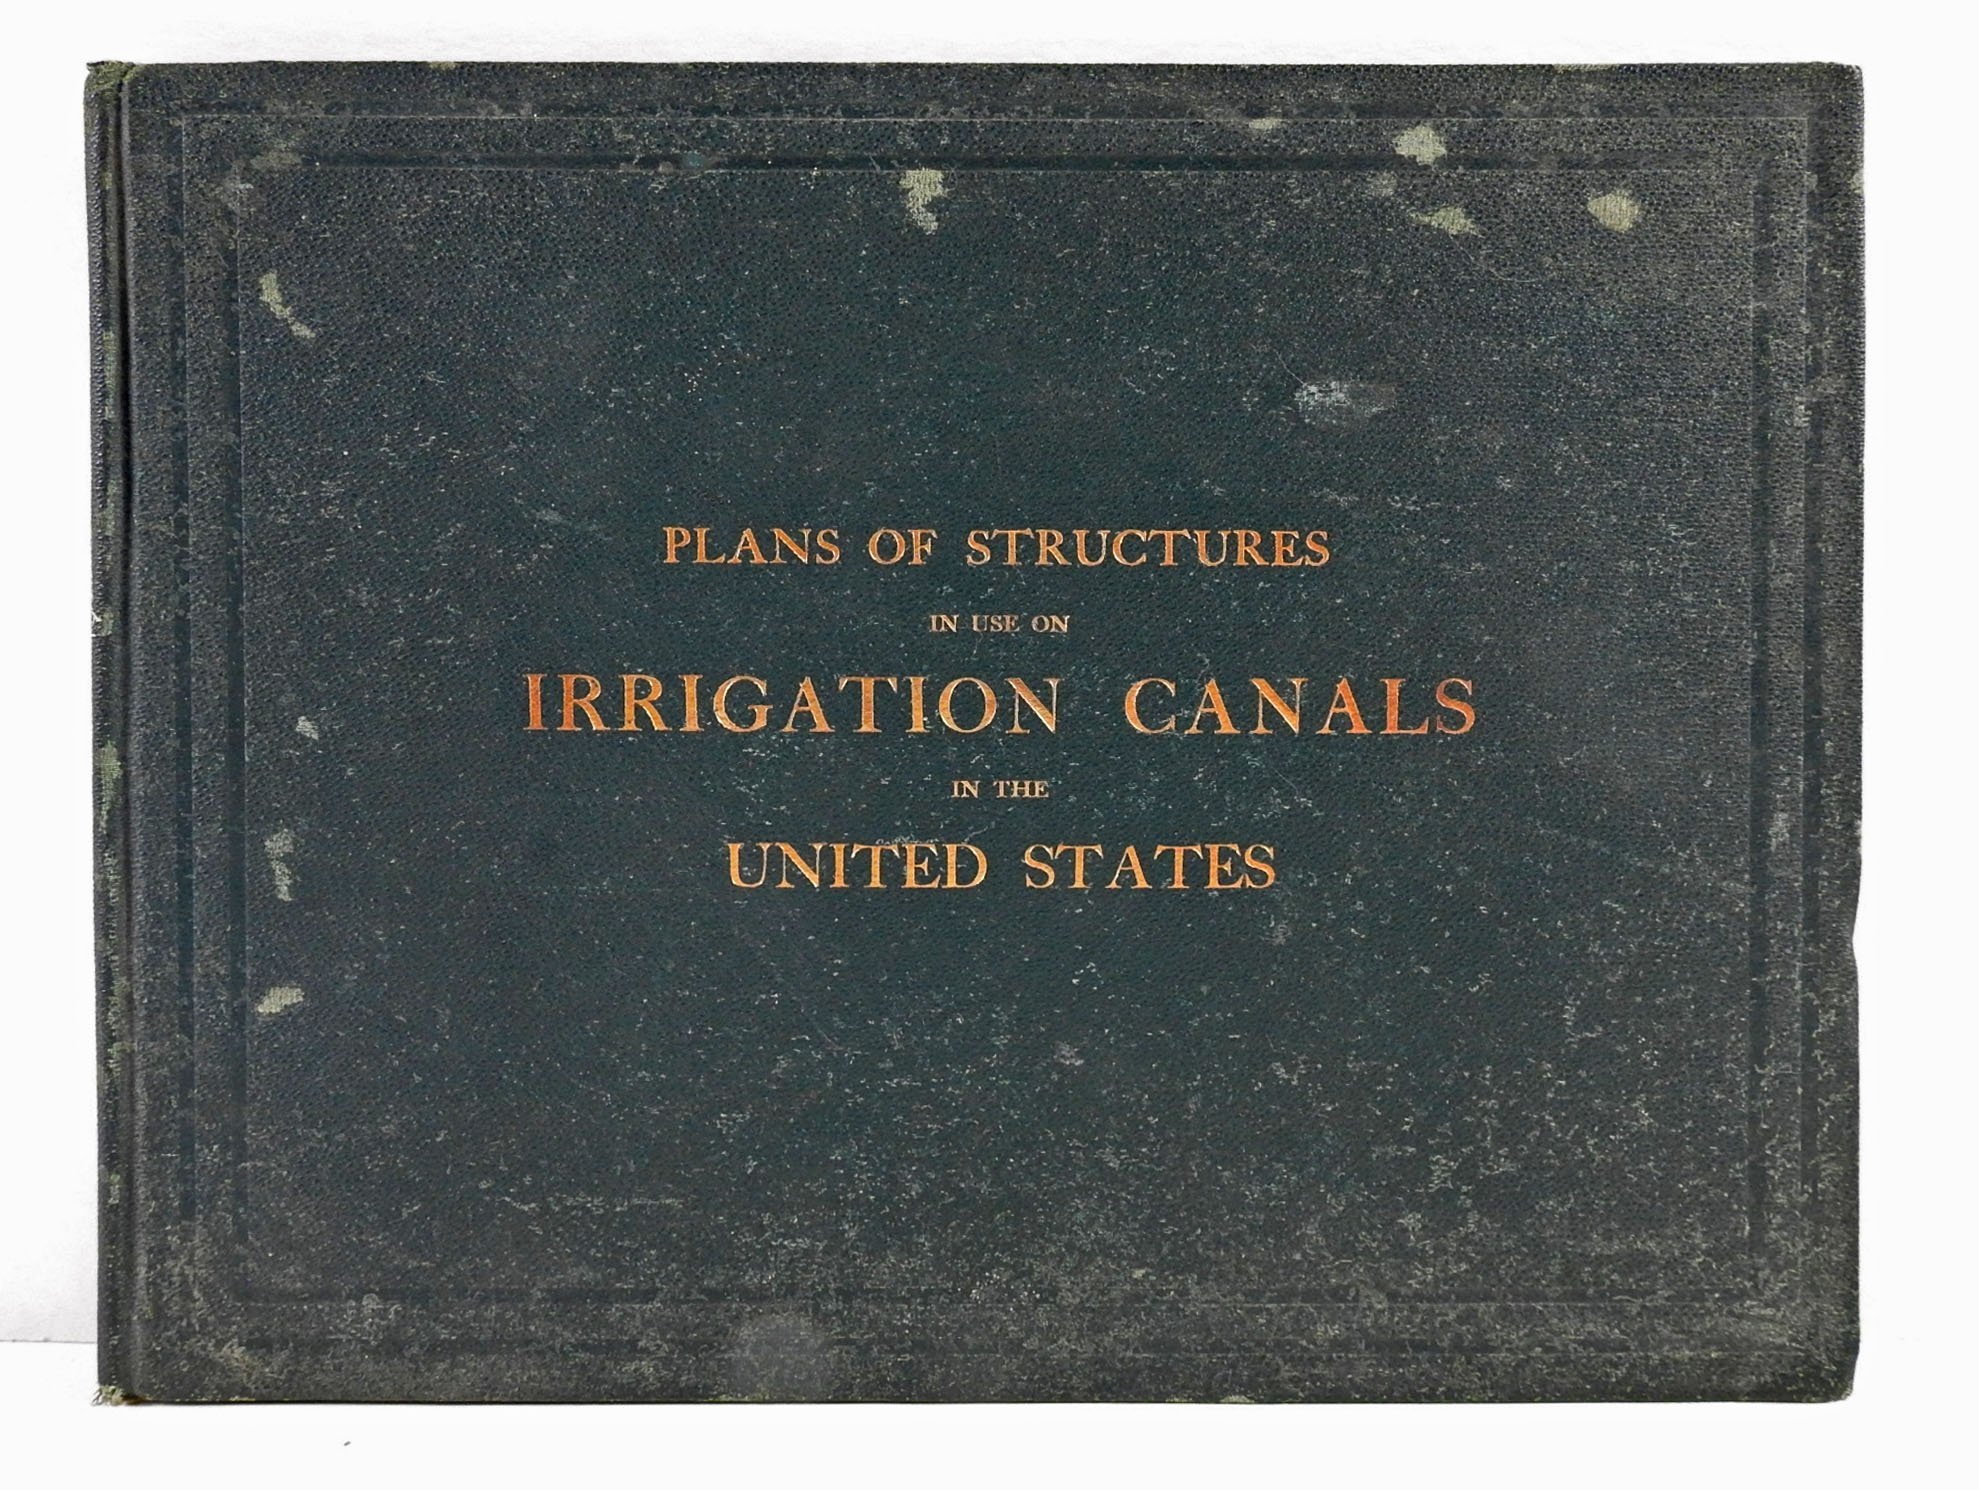 Plans Of Structures In Use In Irrigation Canals In The United States. From Drawings Exhibited By The Office Of Experiment Stations At Paris In 1900 And At Buffalo In 1901.